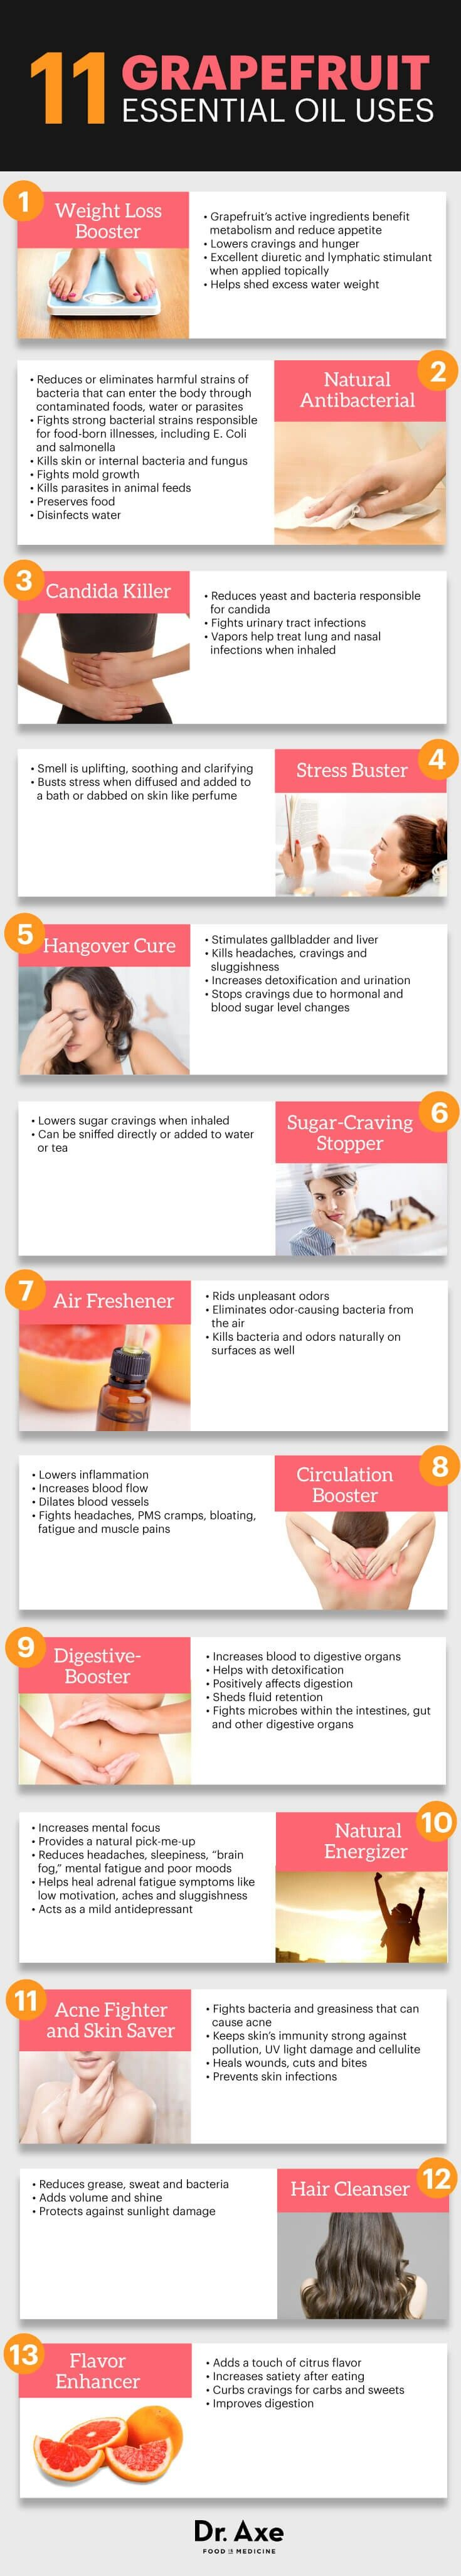 Benefits of grapefruit oil